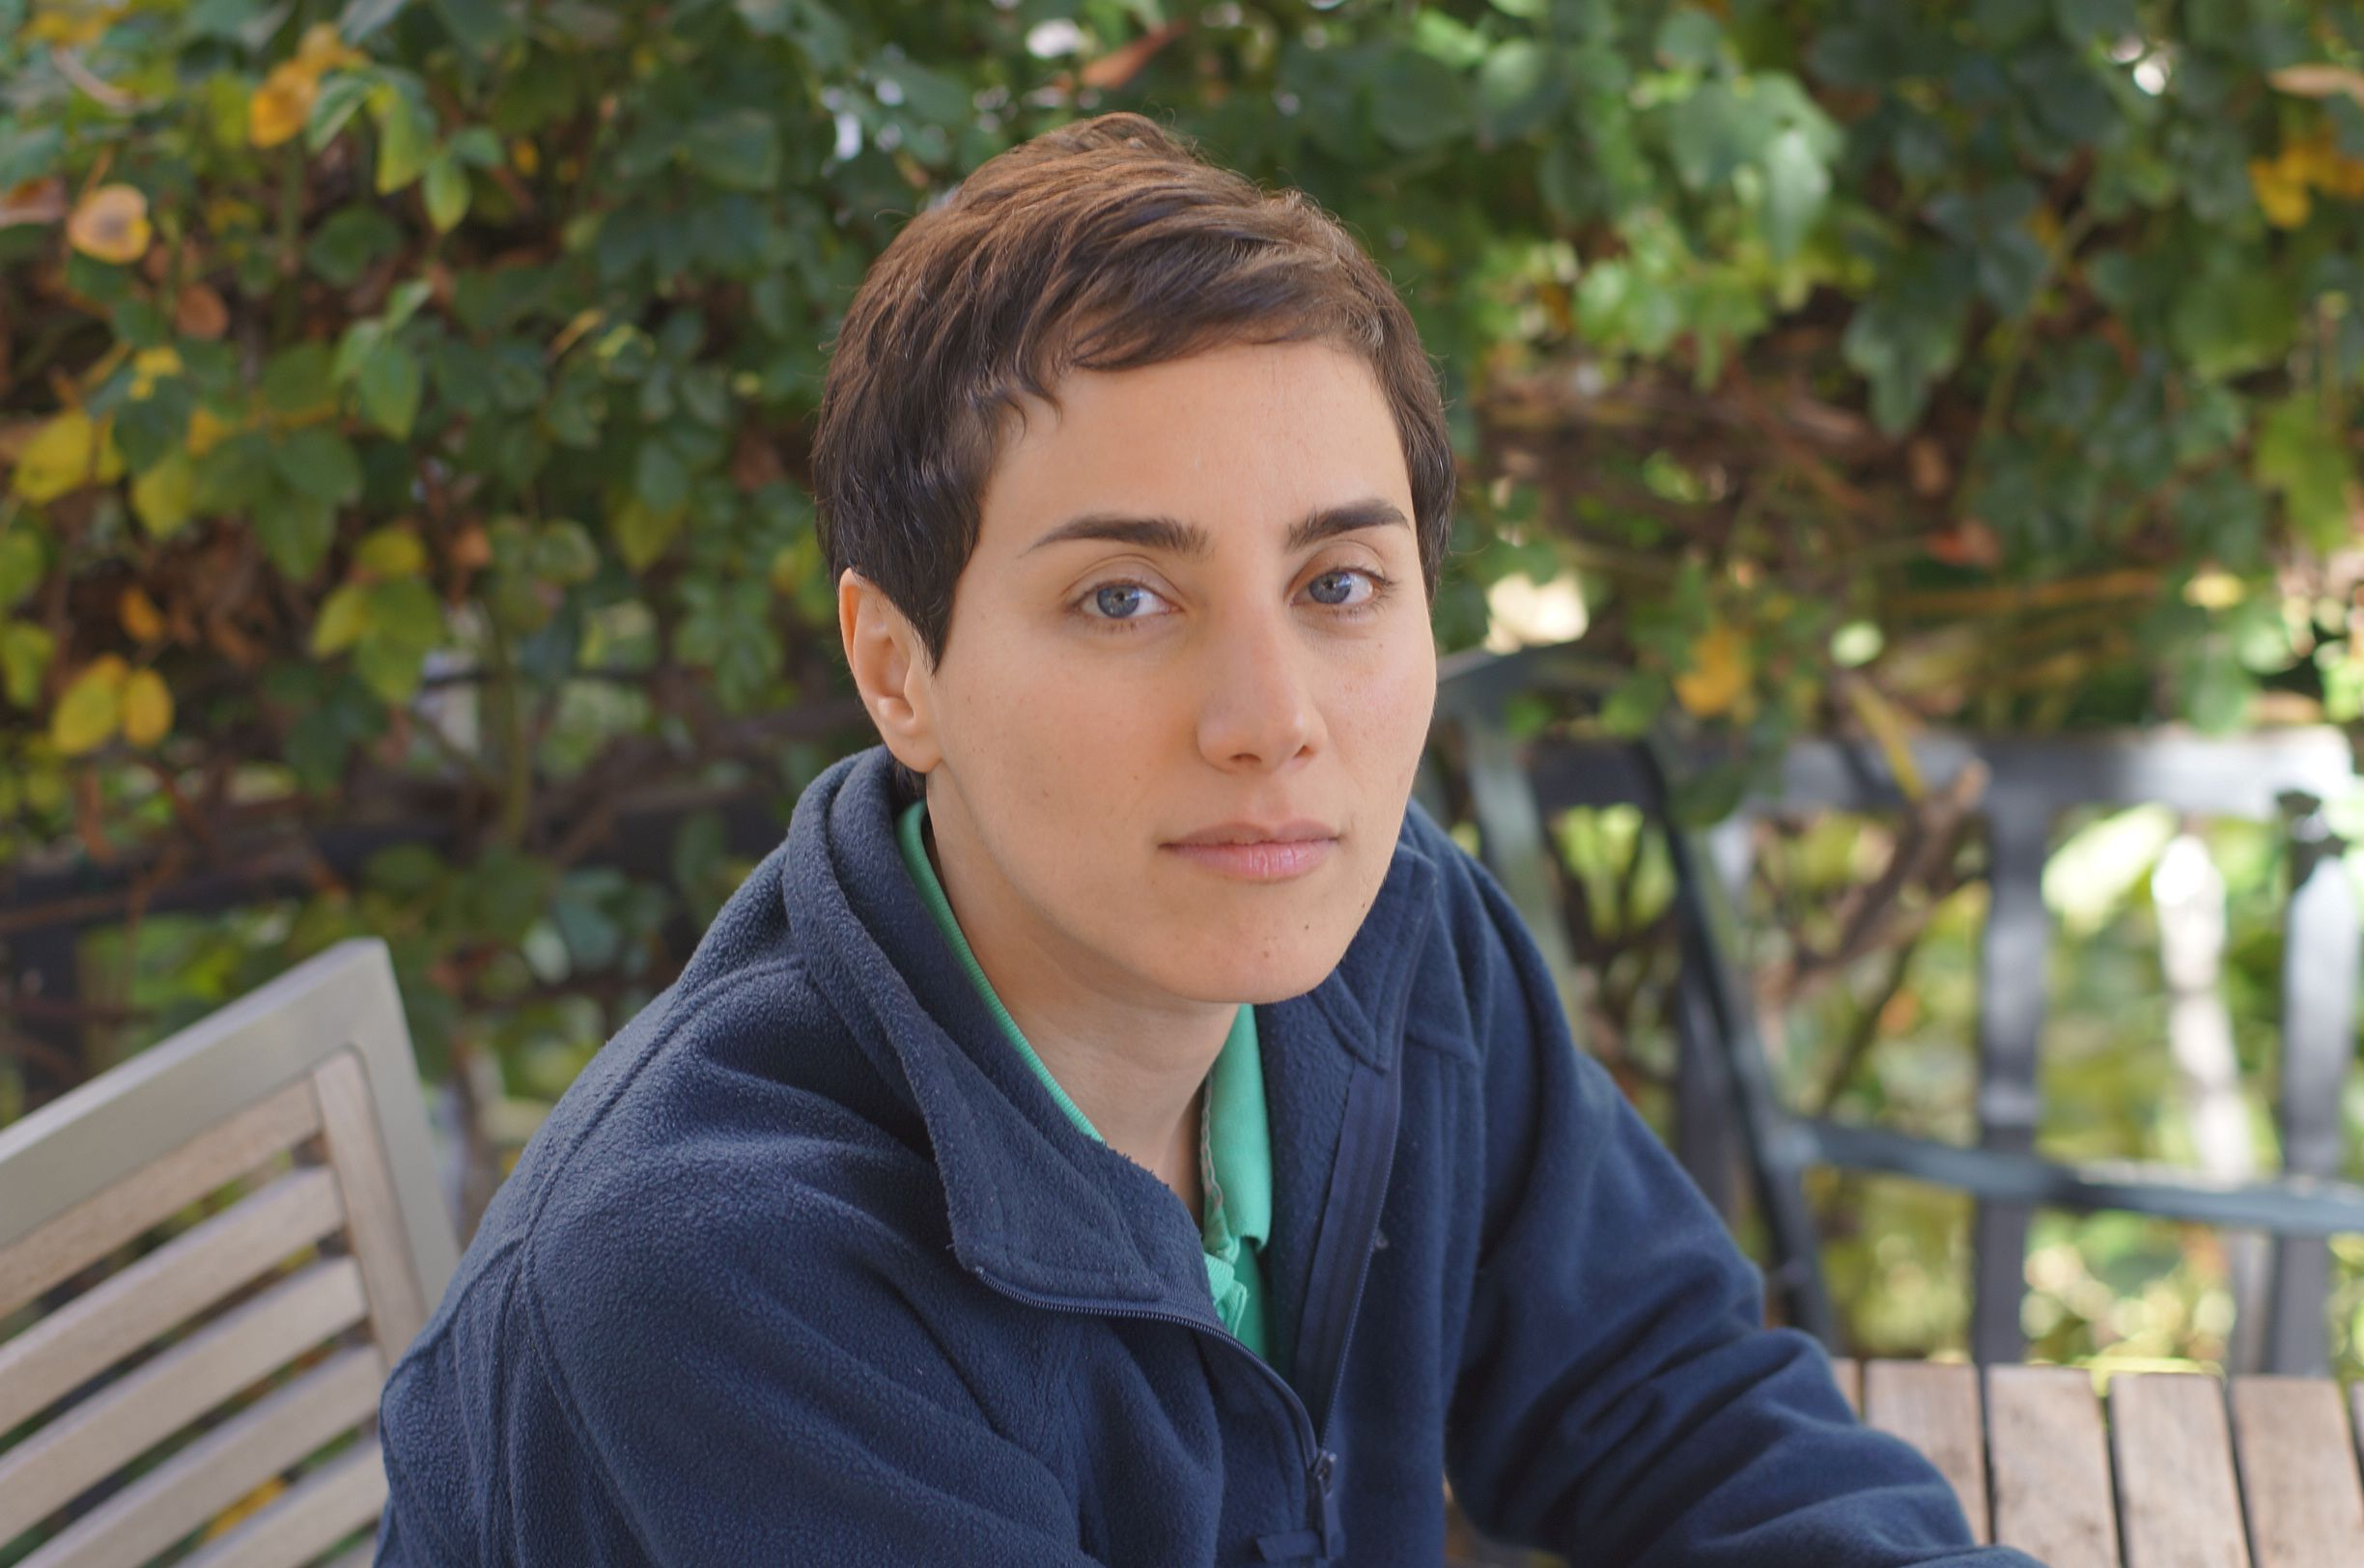 Sorrow after the death of Maryam Mirzakhani, a pioneering Iranian mathematician